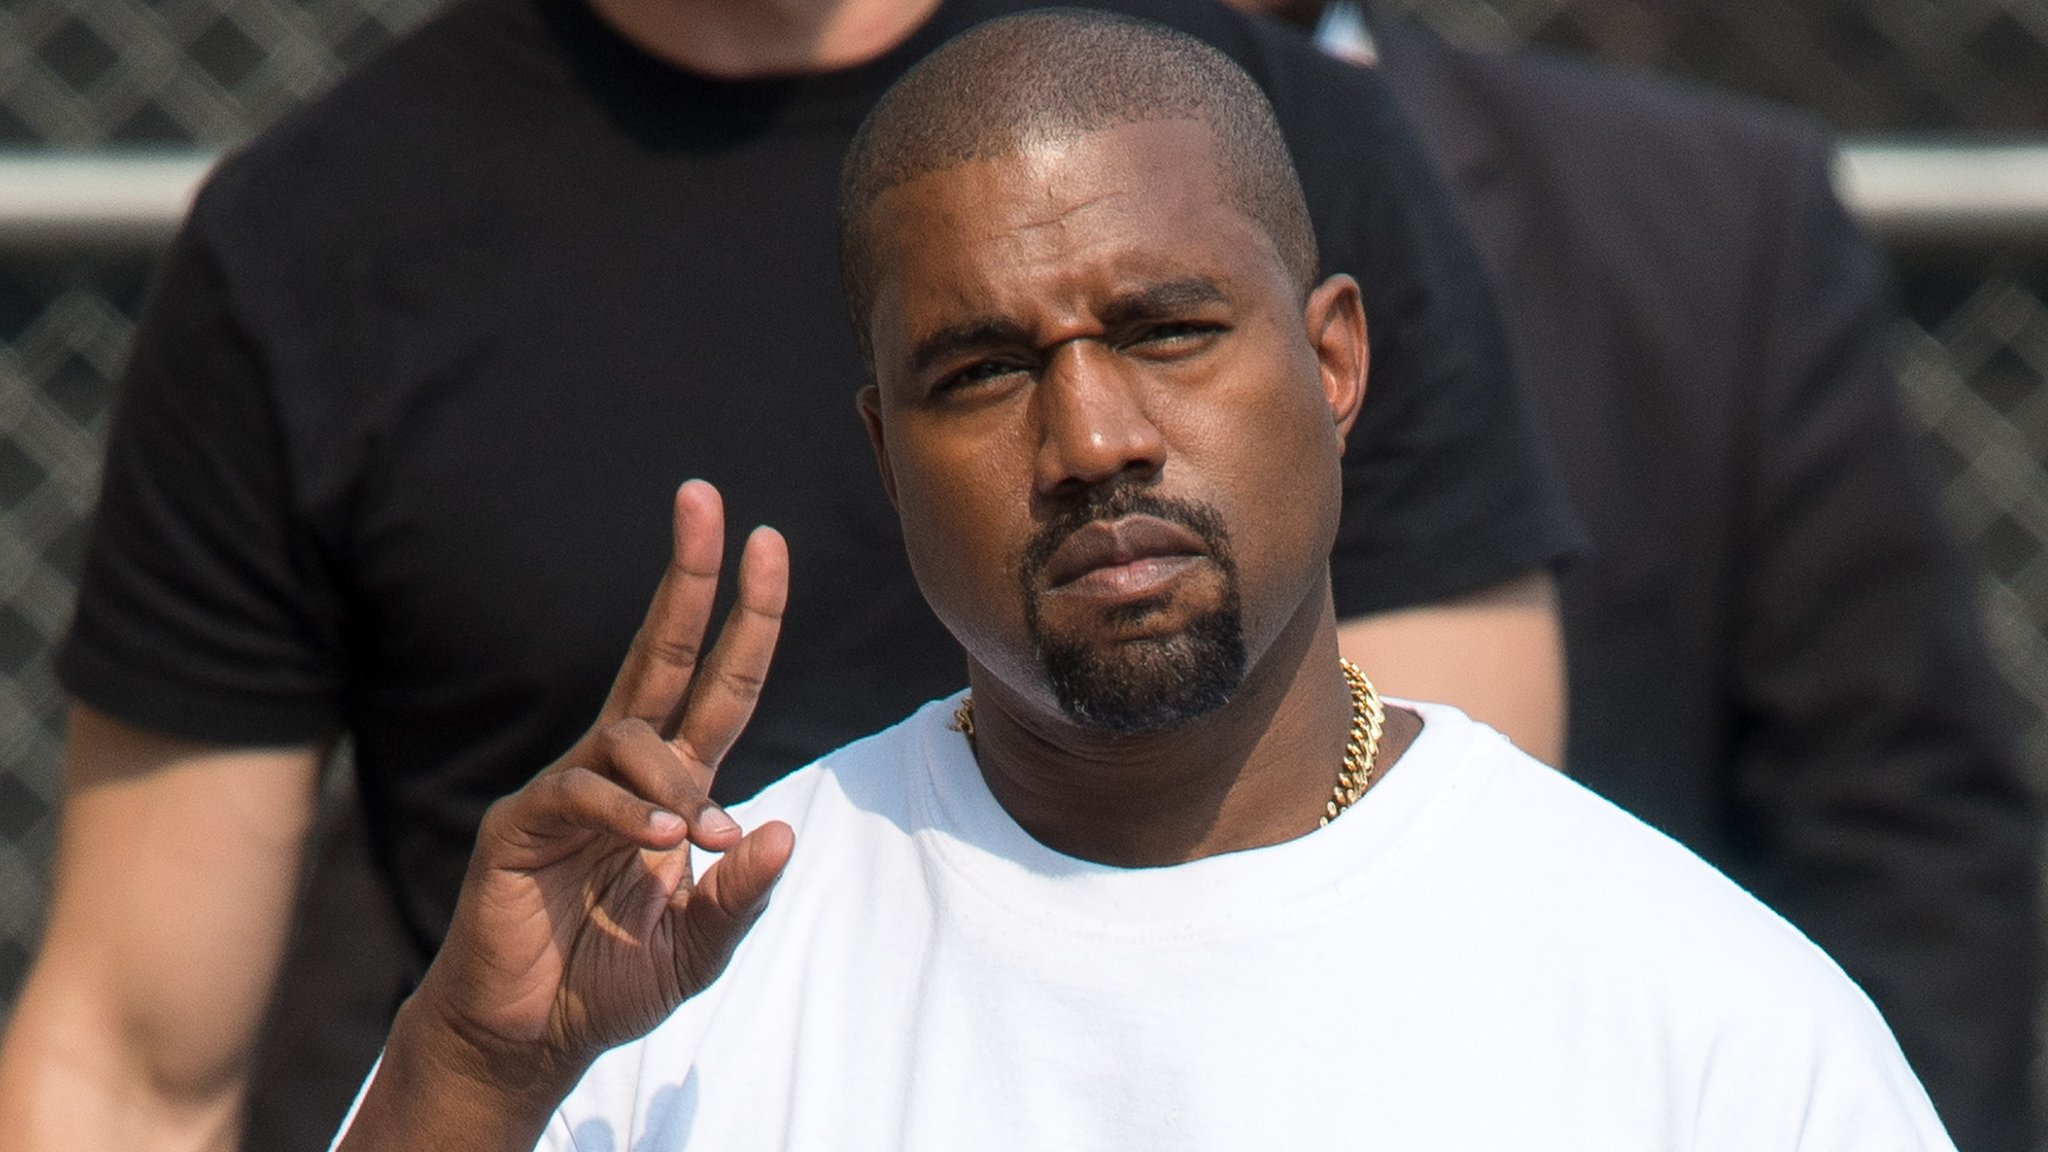 Kanye West: I wasn't stumped by Kimmel's Trump question